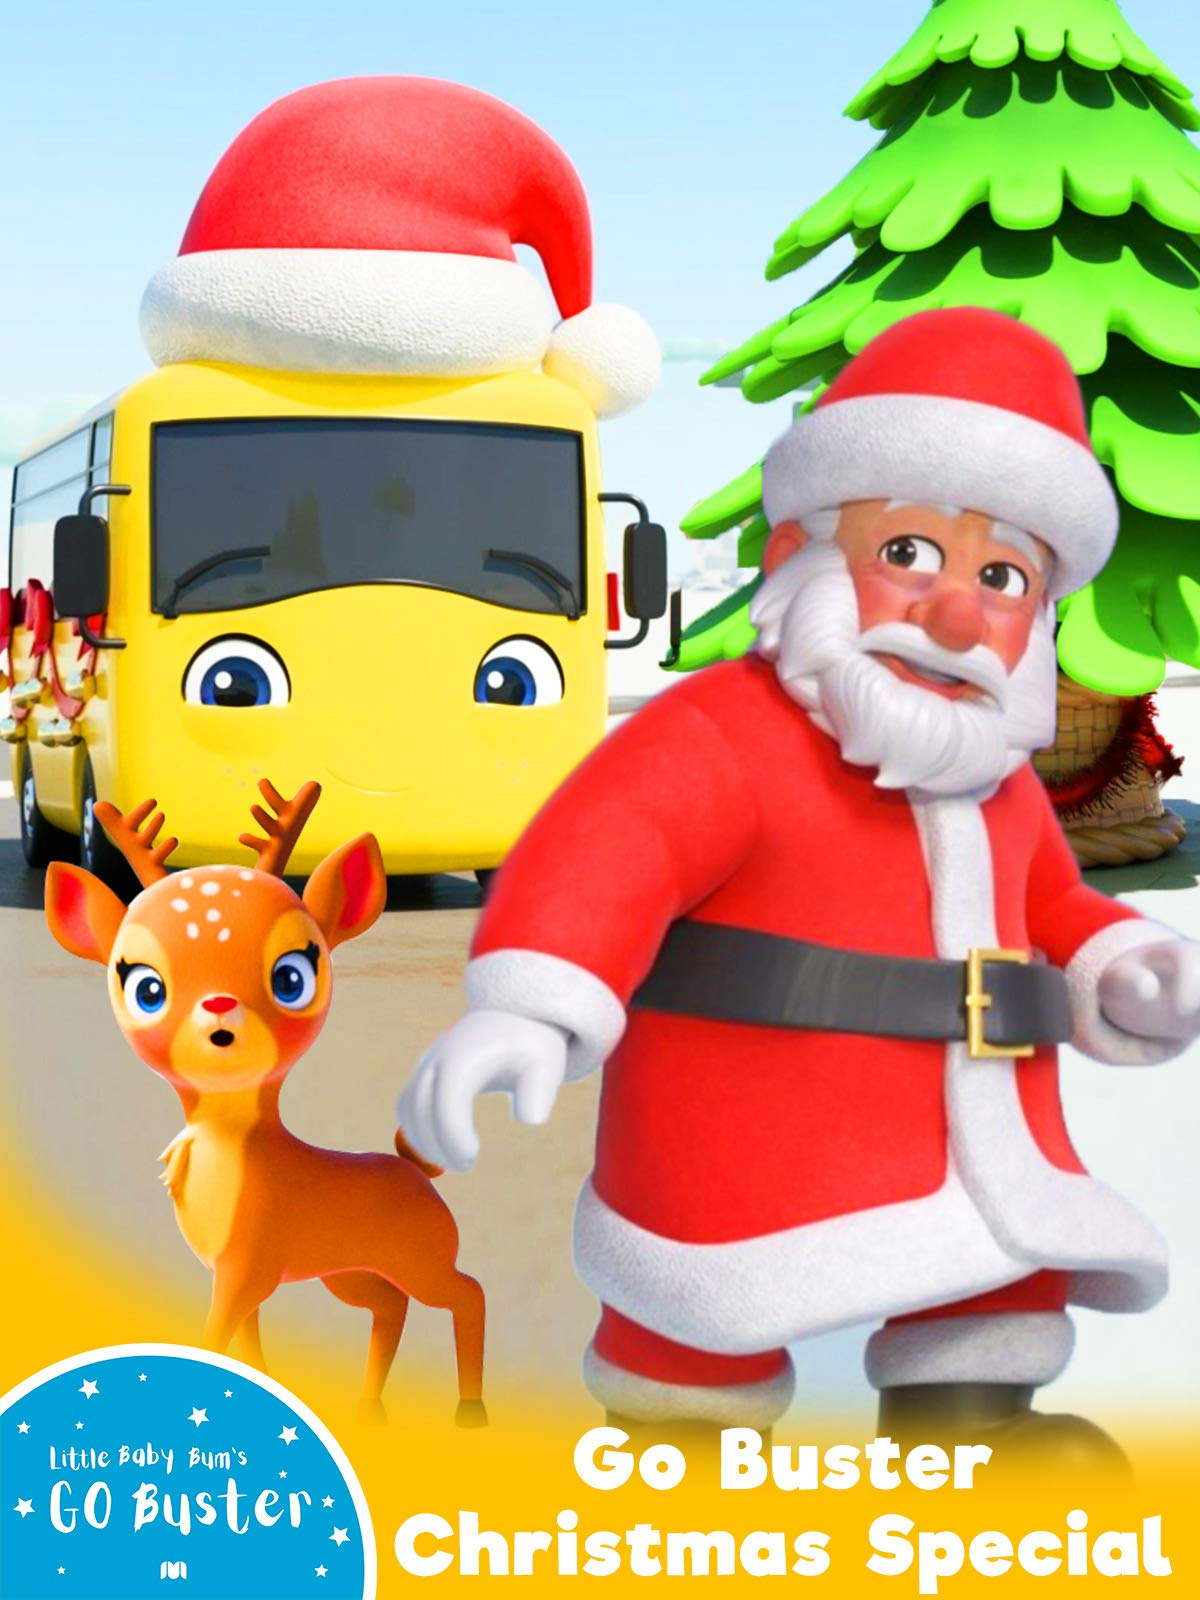 Go Buster - Christmas Special